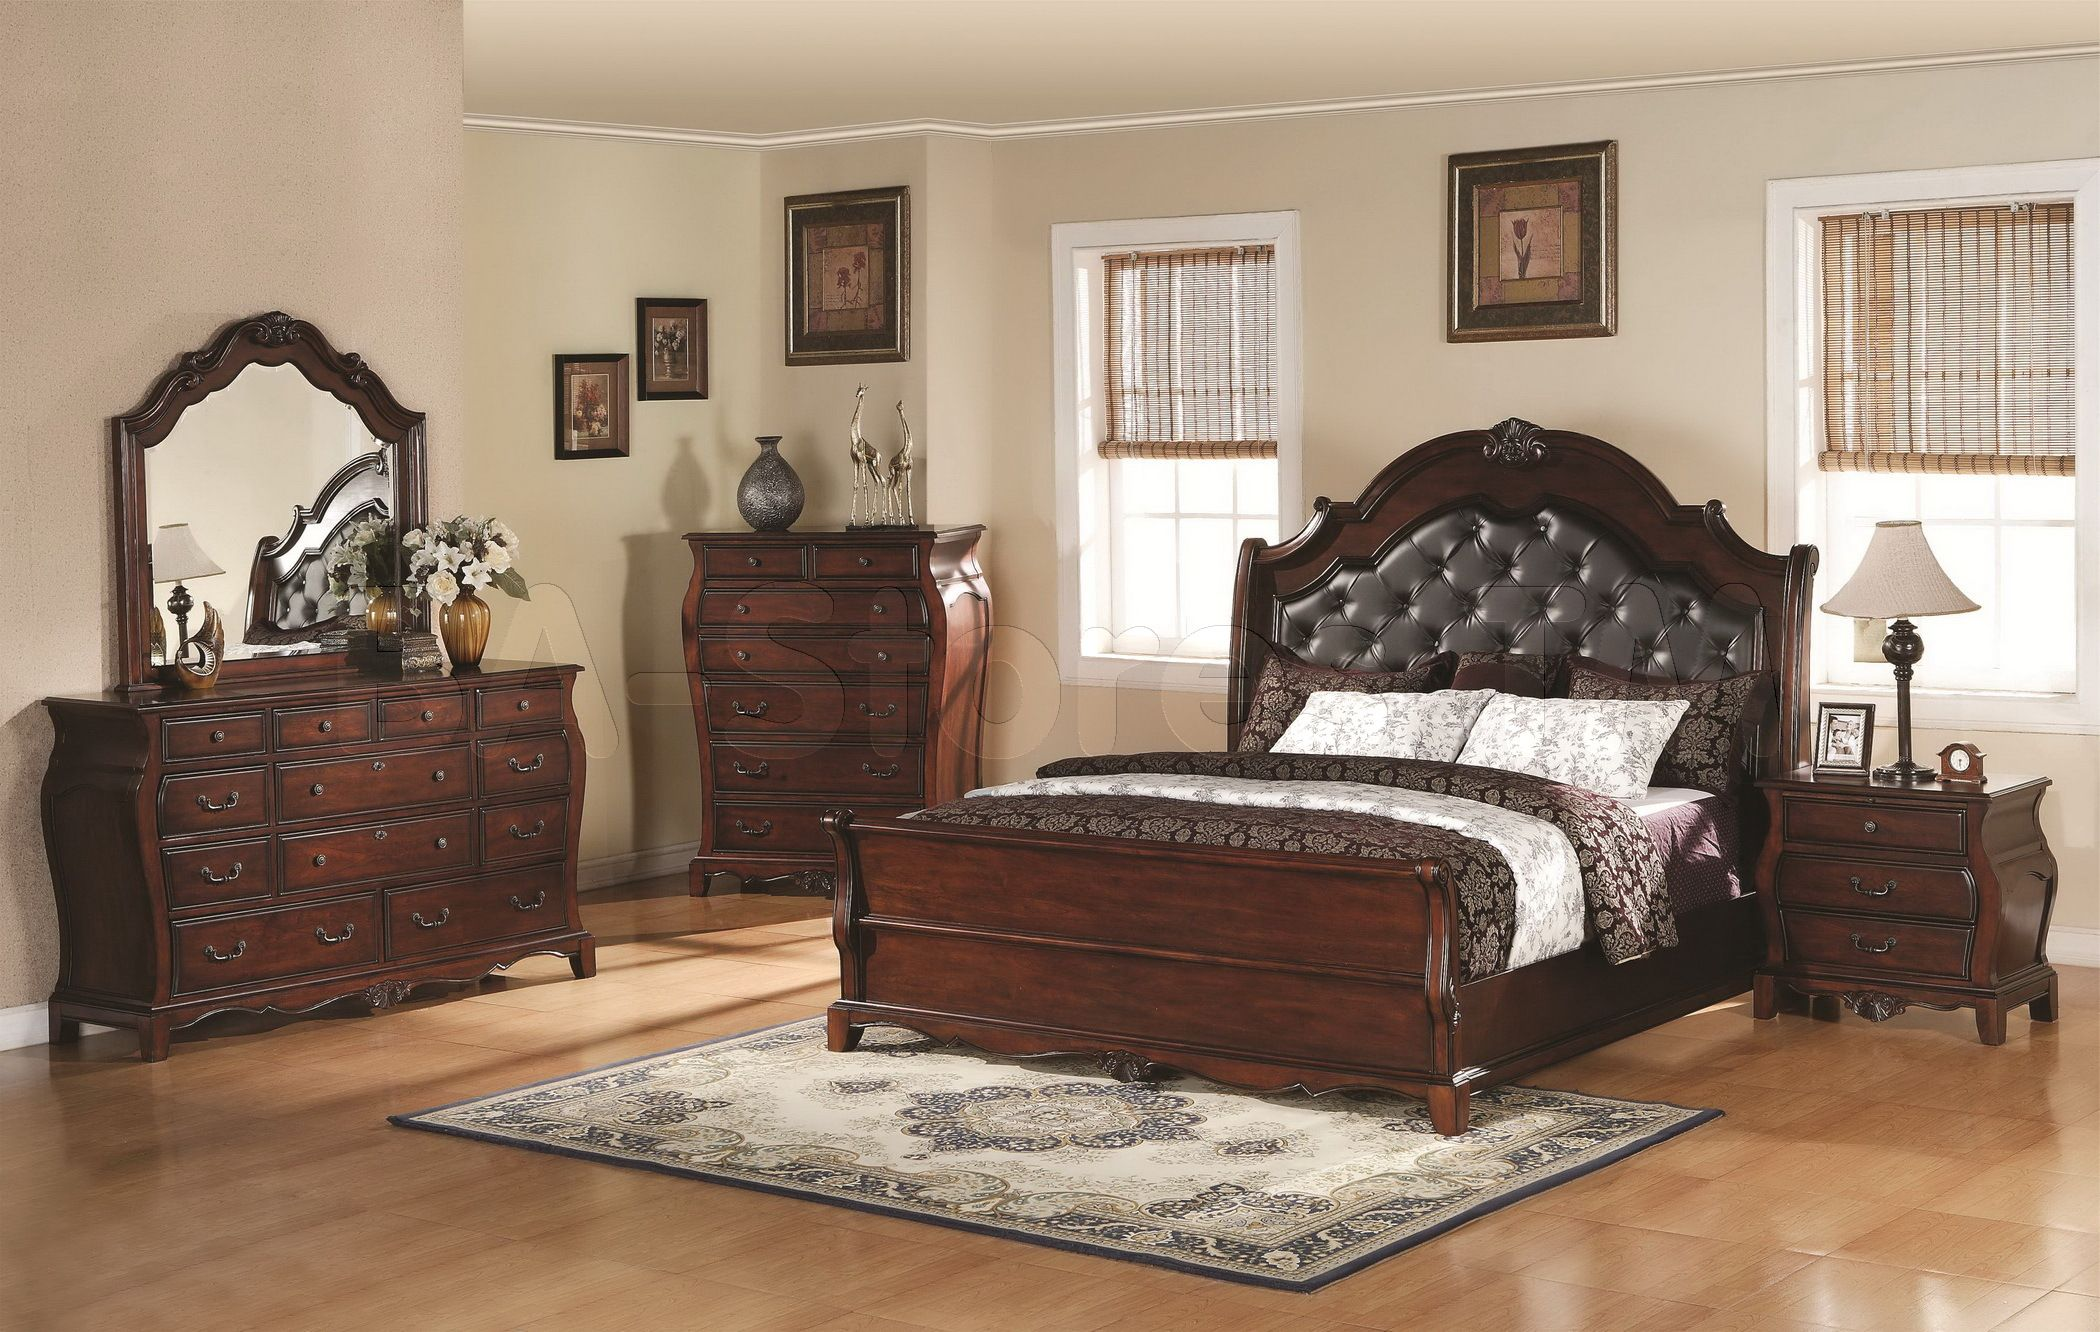 traditional-bedroom-furniture-sets-as-traditional-bedroom-decorations-by-Bedroom-decor-looks-obtained-from-many-references-Bedroom-7.jpg (2100×1332)